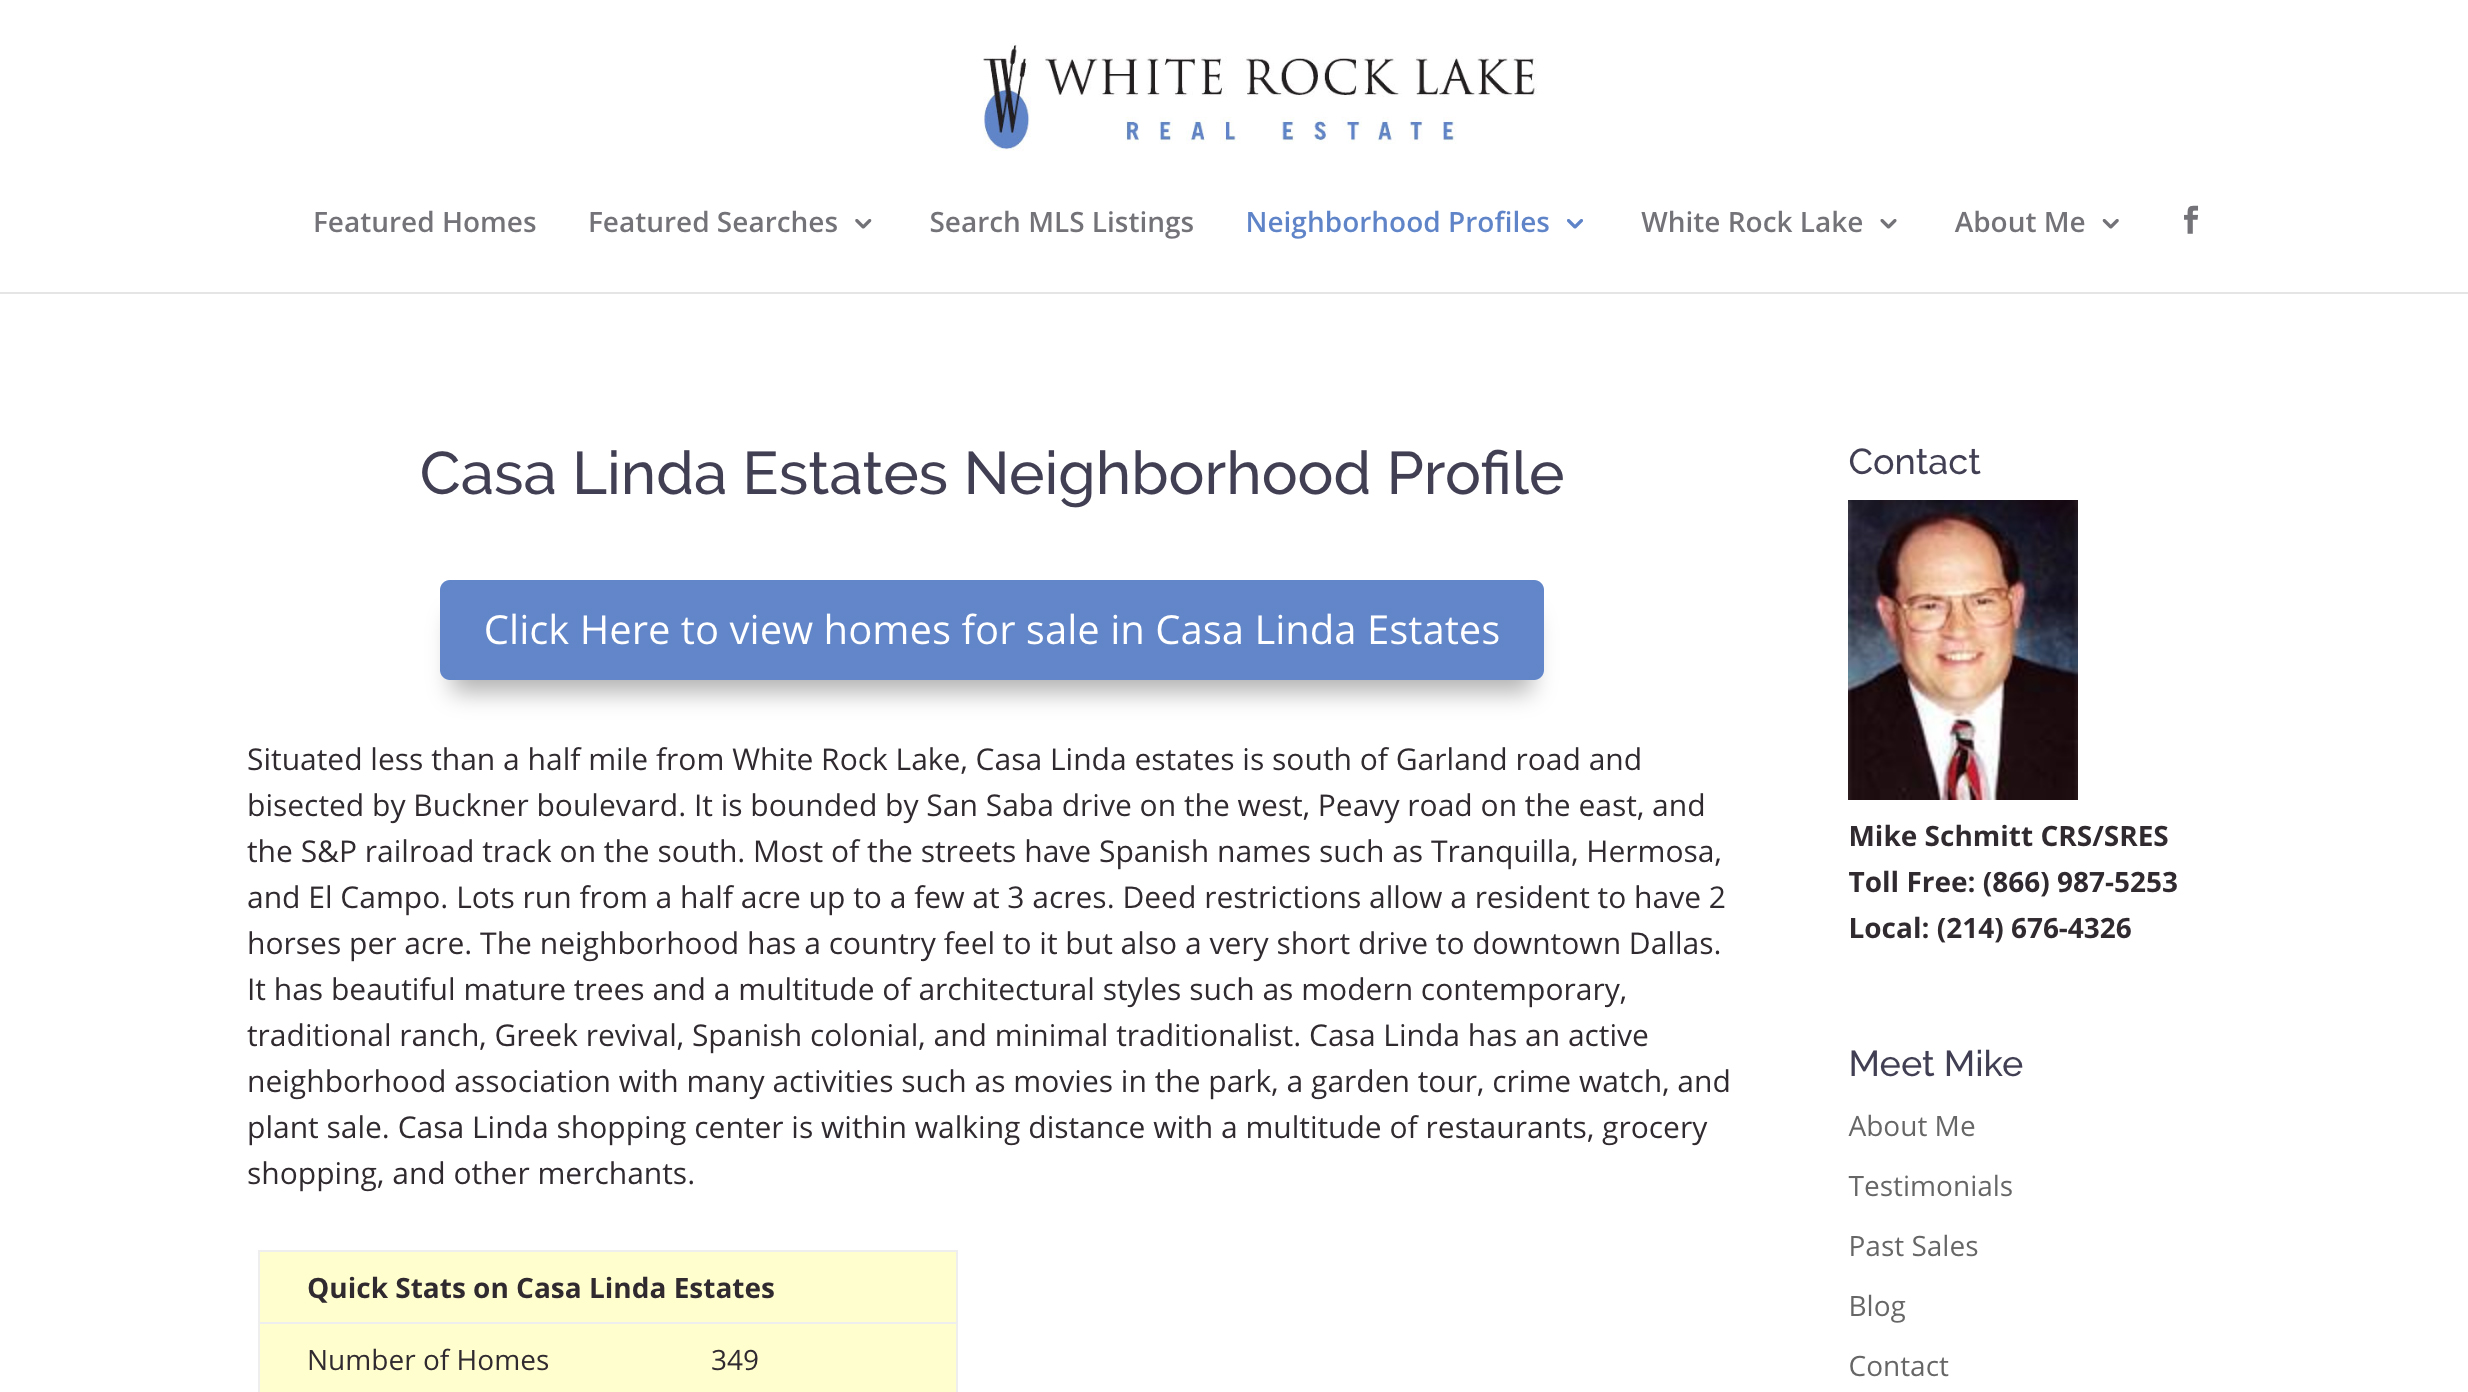 White Rock Lake Properties - Slide 1